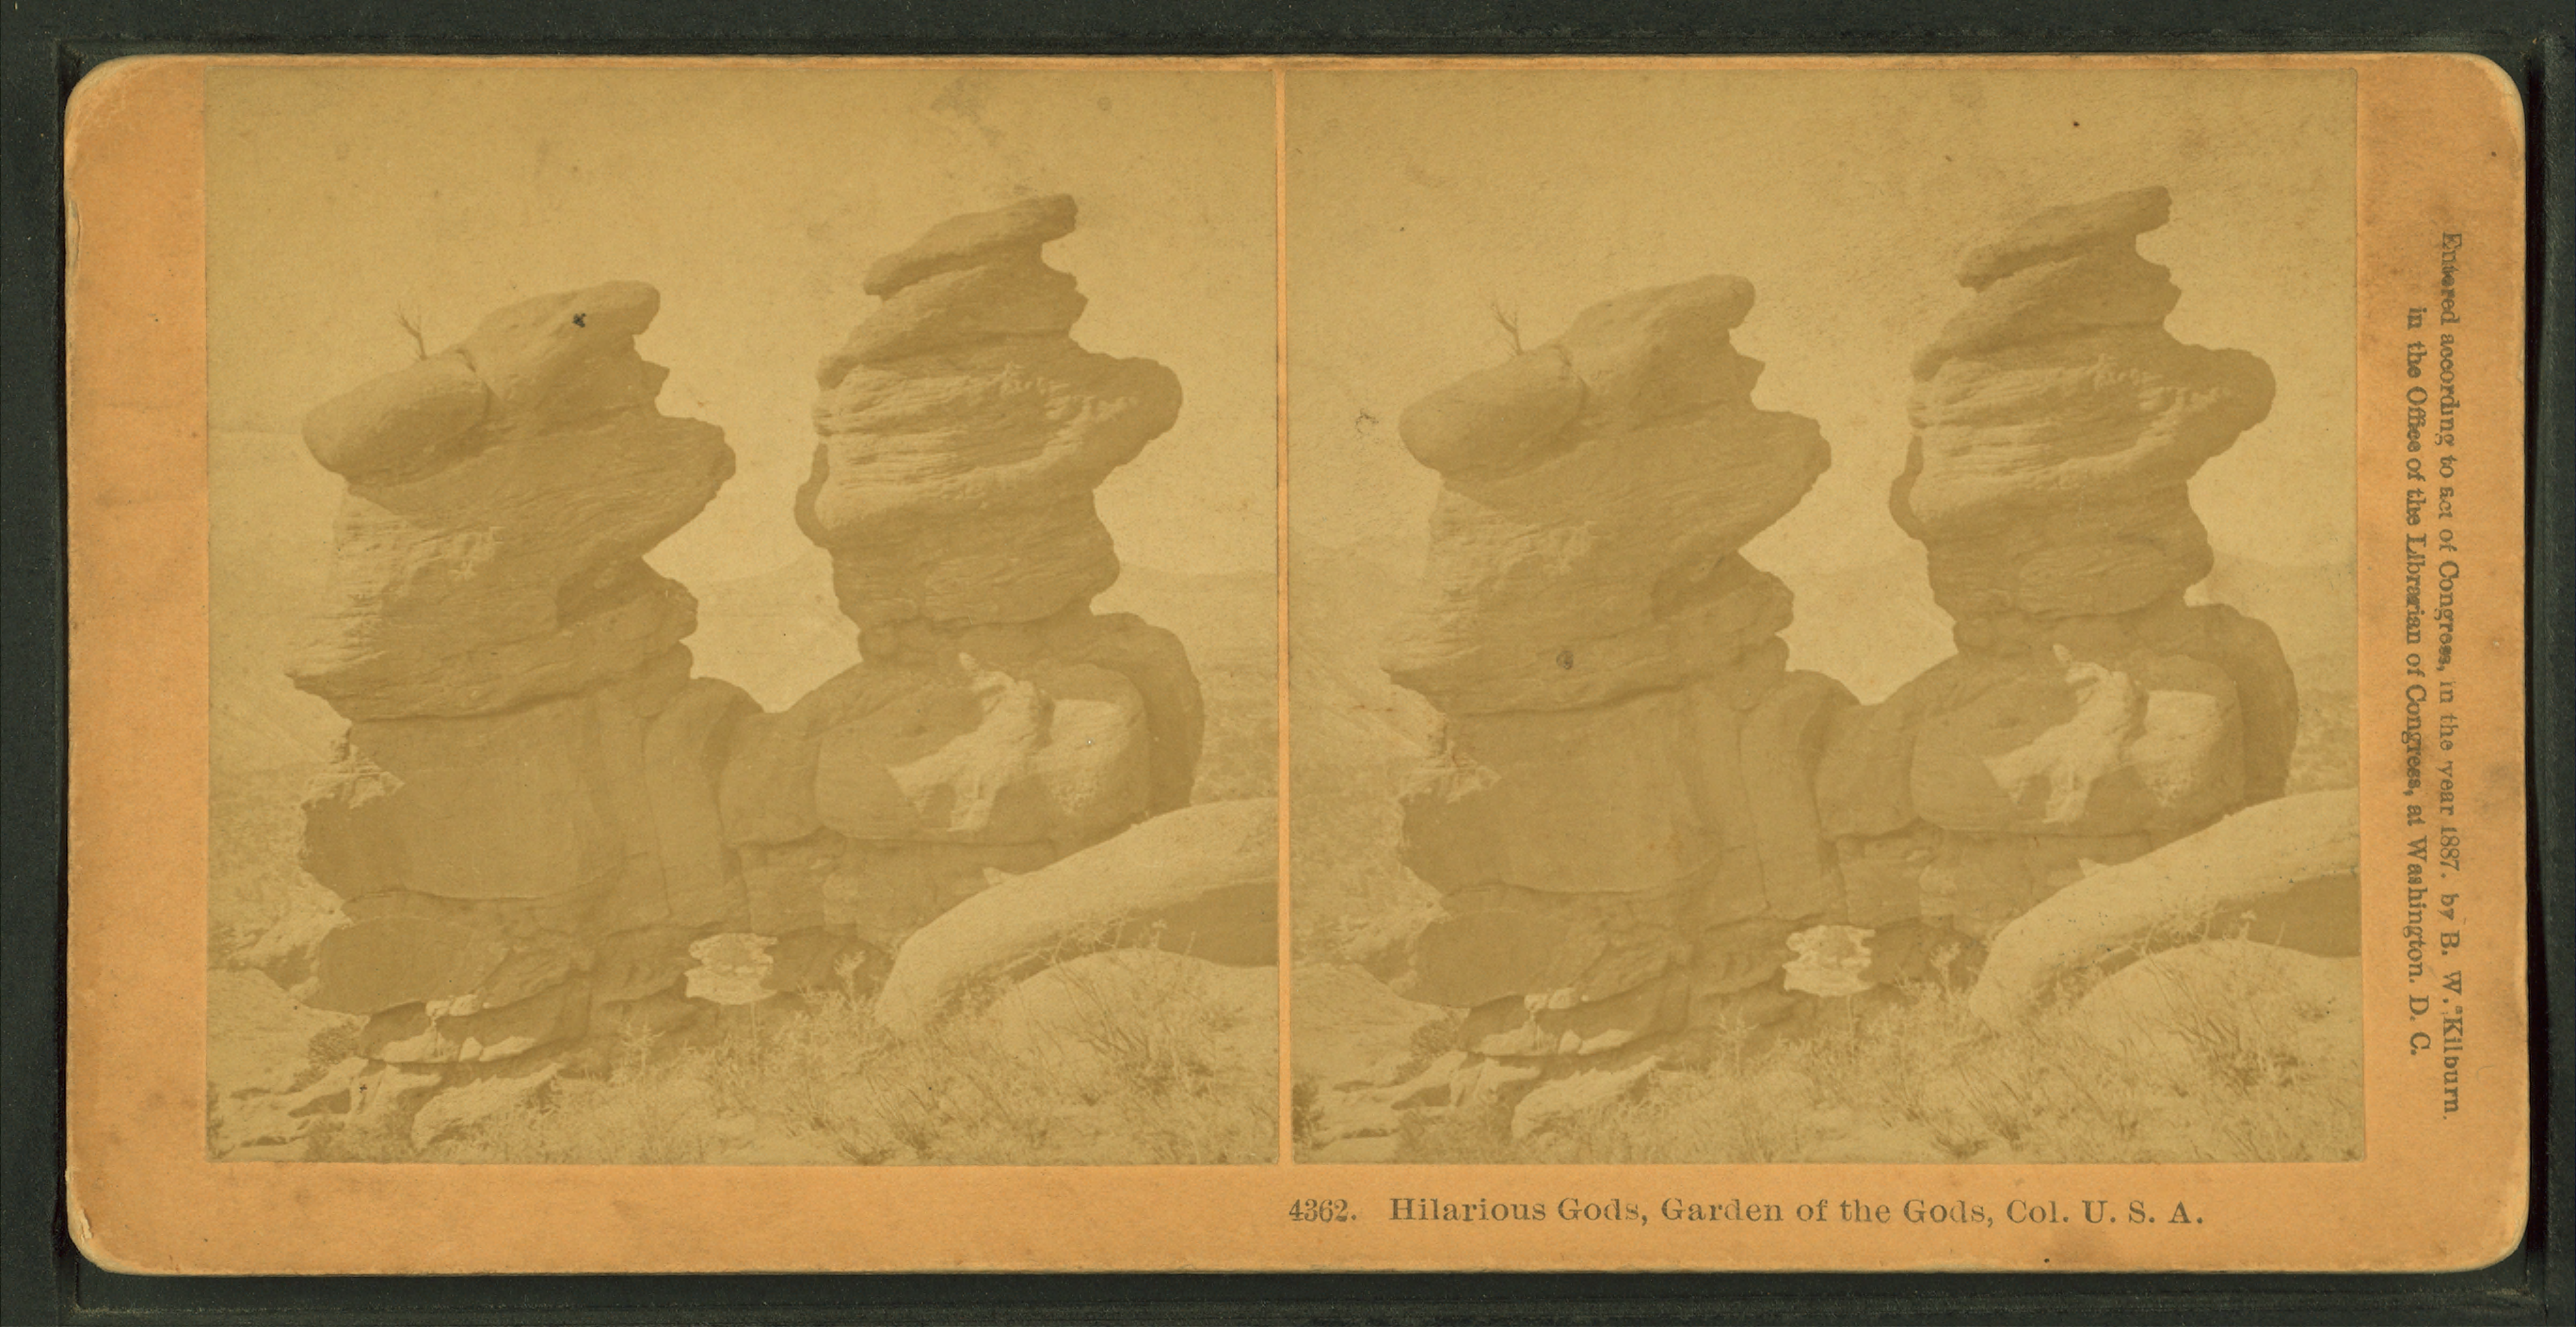 File Hilarious Gods Garden Of The Gods Col U S A From